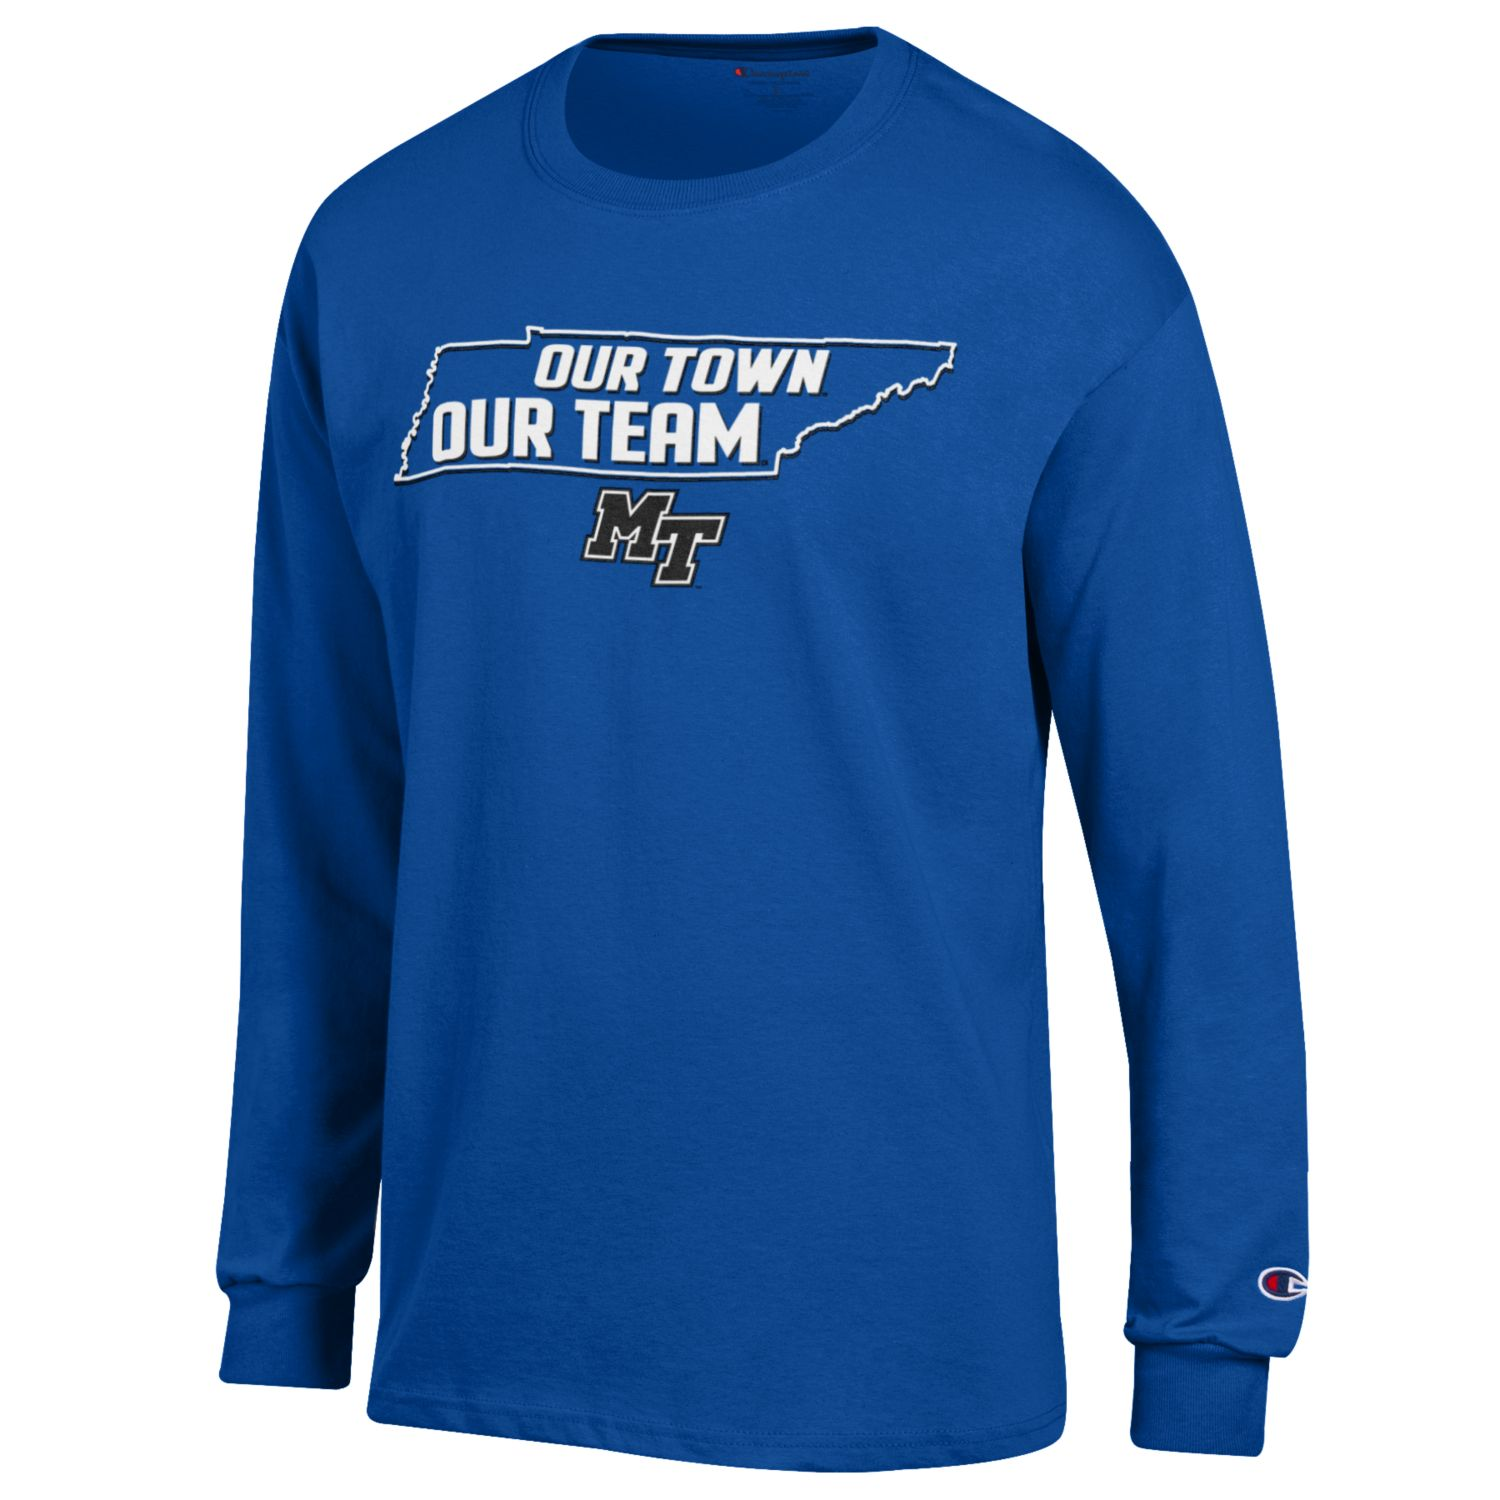 Our Town Our Team MT Long Sleeve Shirt